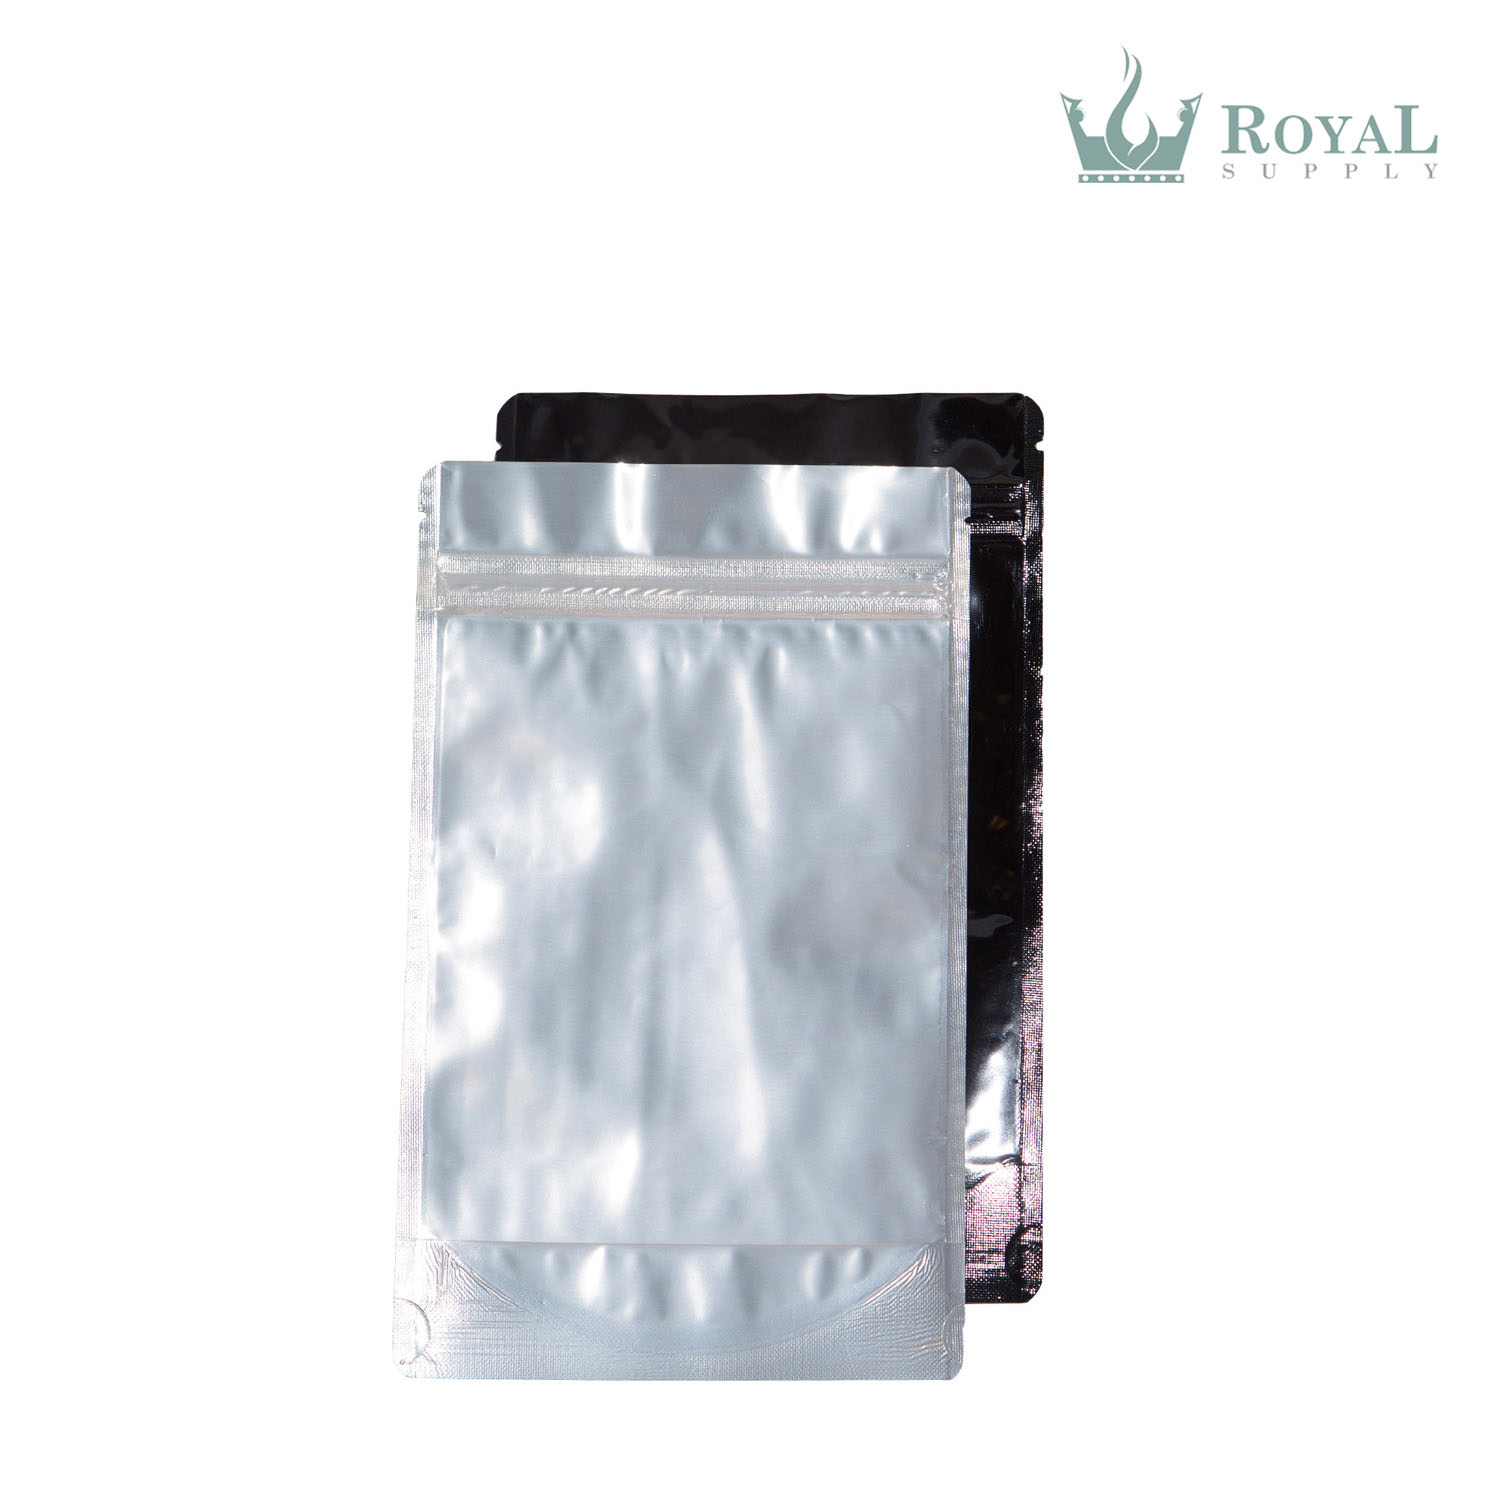 1/2 Ounce Mylar Barrier Bags